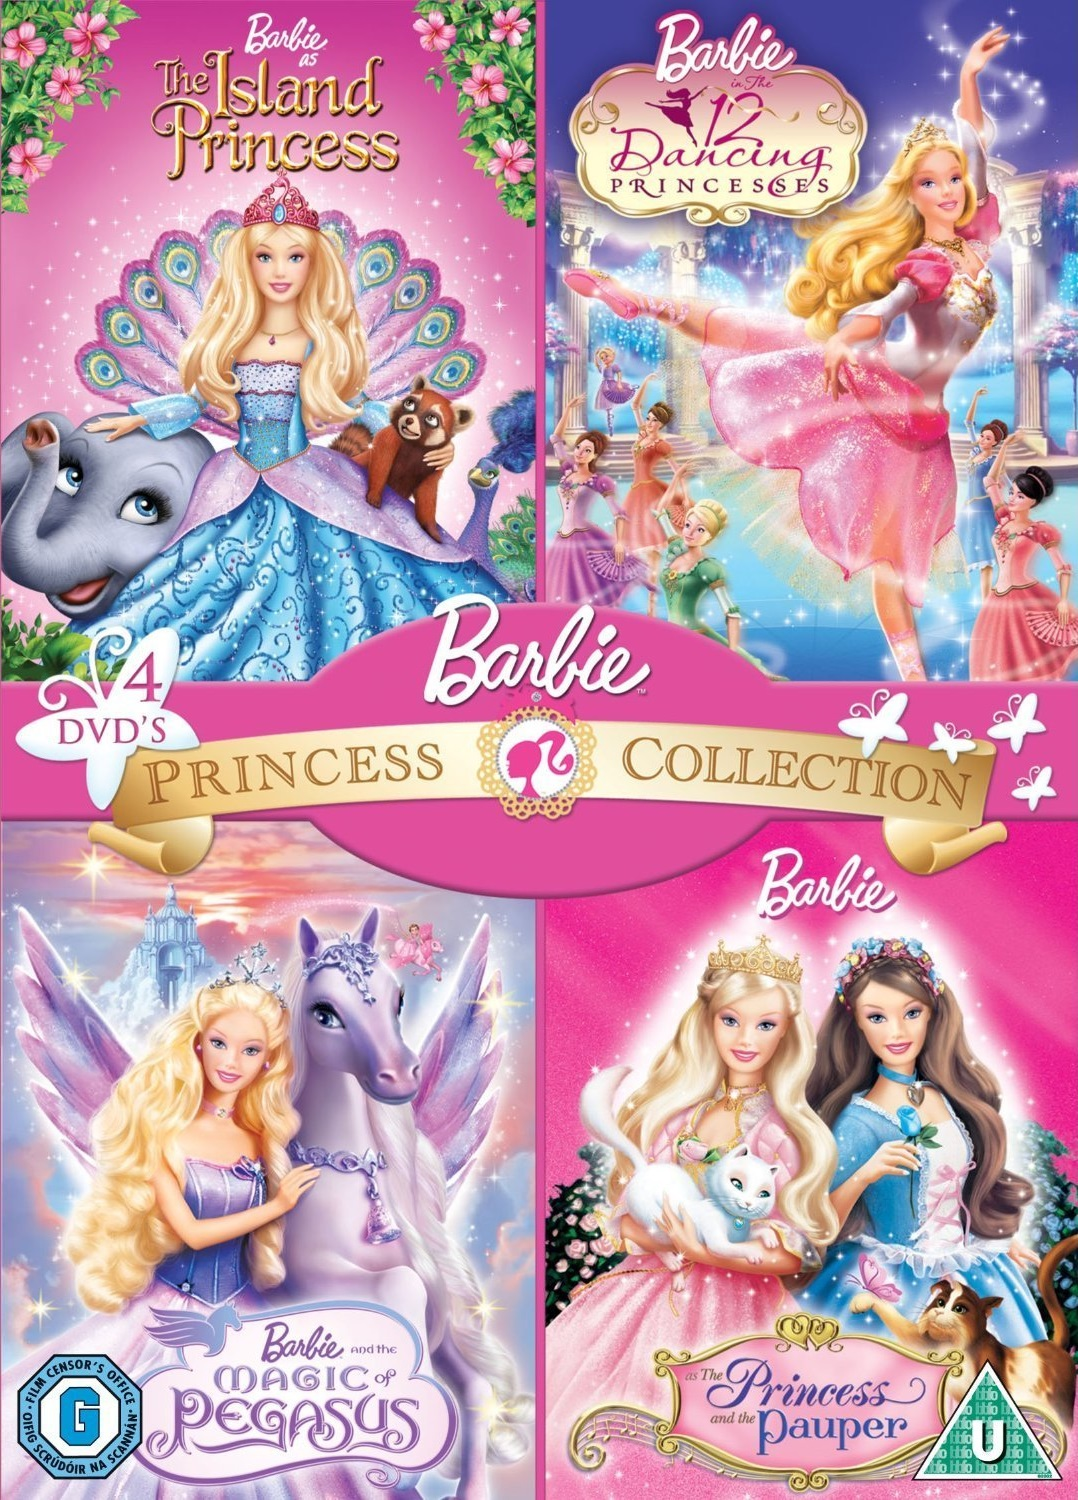 Princesses Barbie Full Movie In Urdu